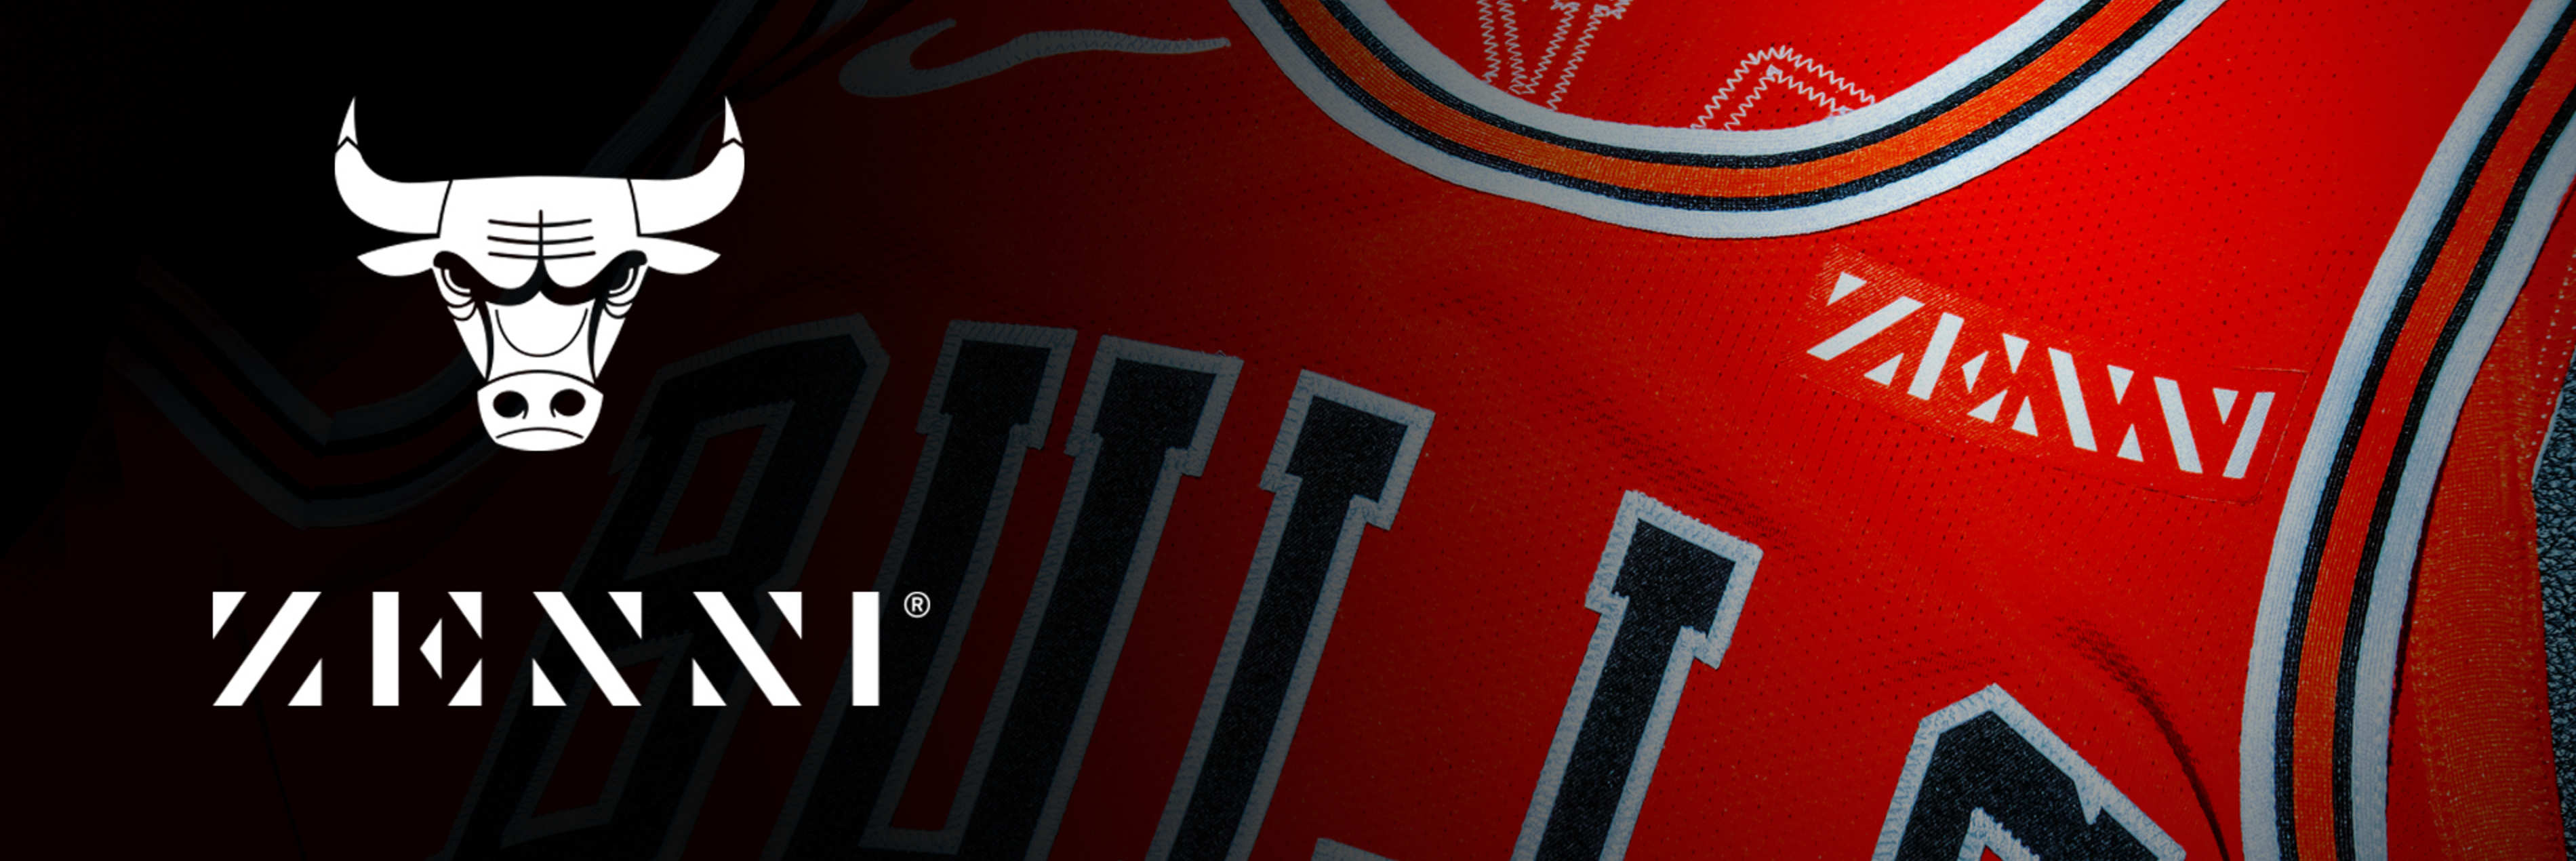 2f6da3b211 Zenni Optical becomes first-ever jersey patch partner of the Chicago Bulls